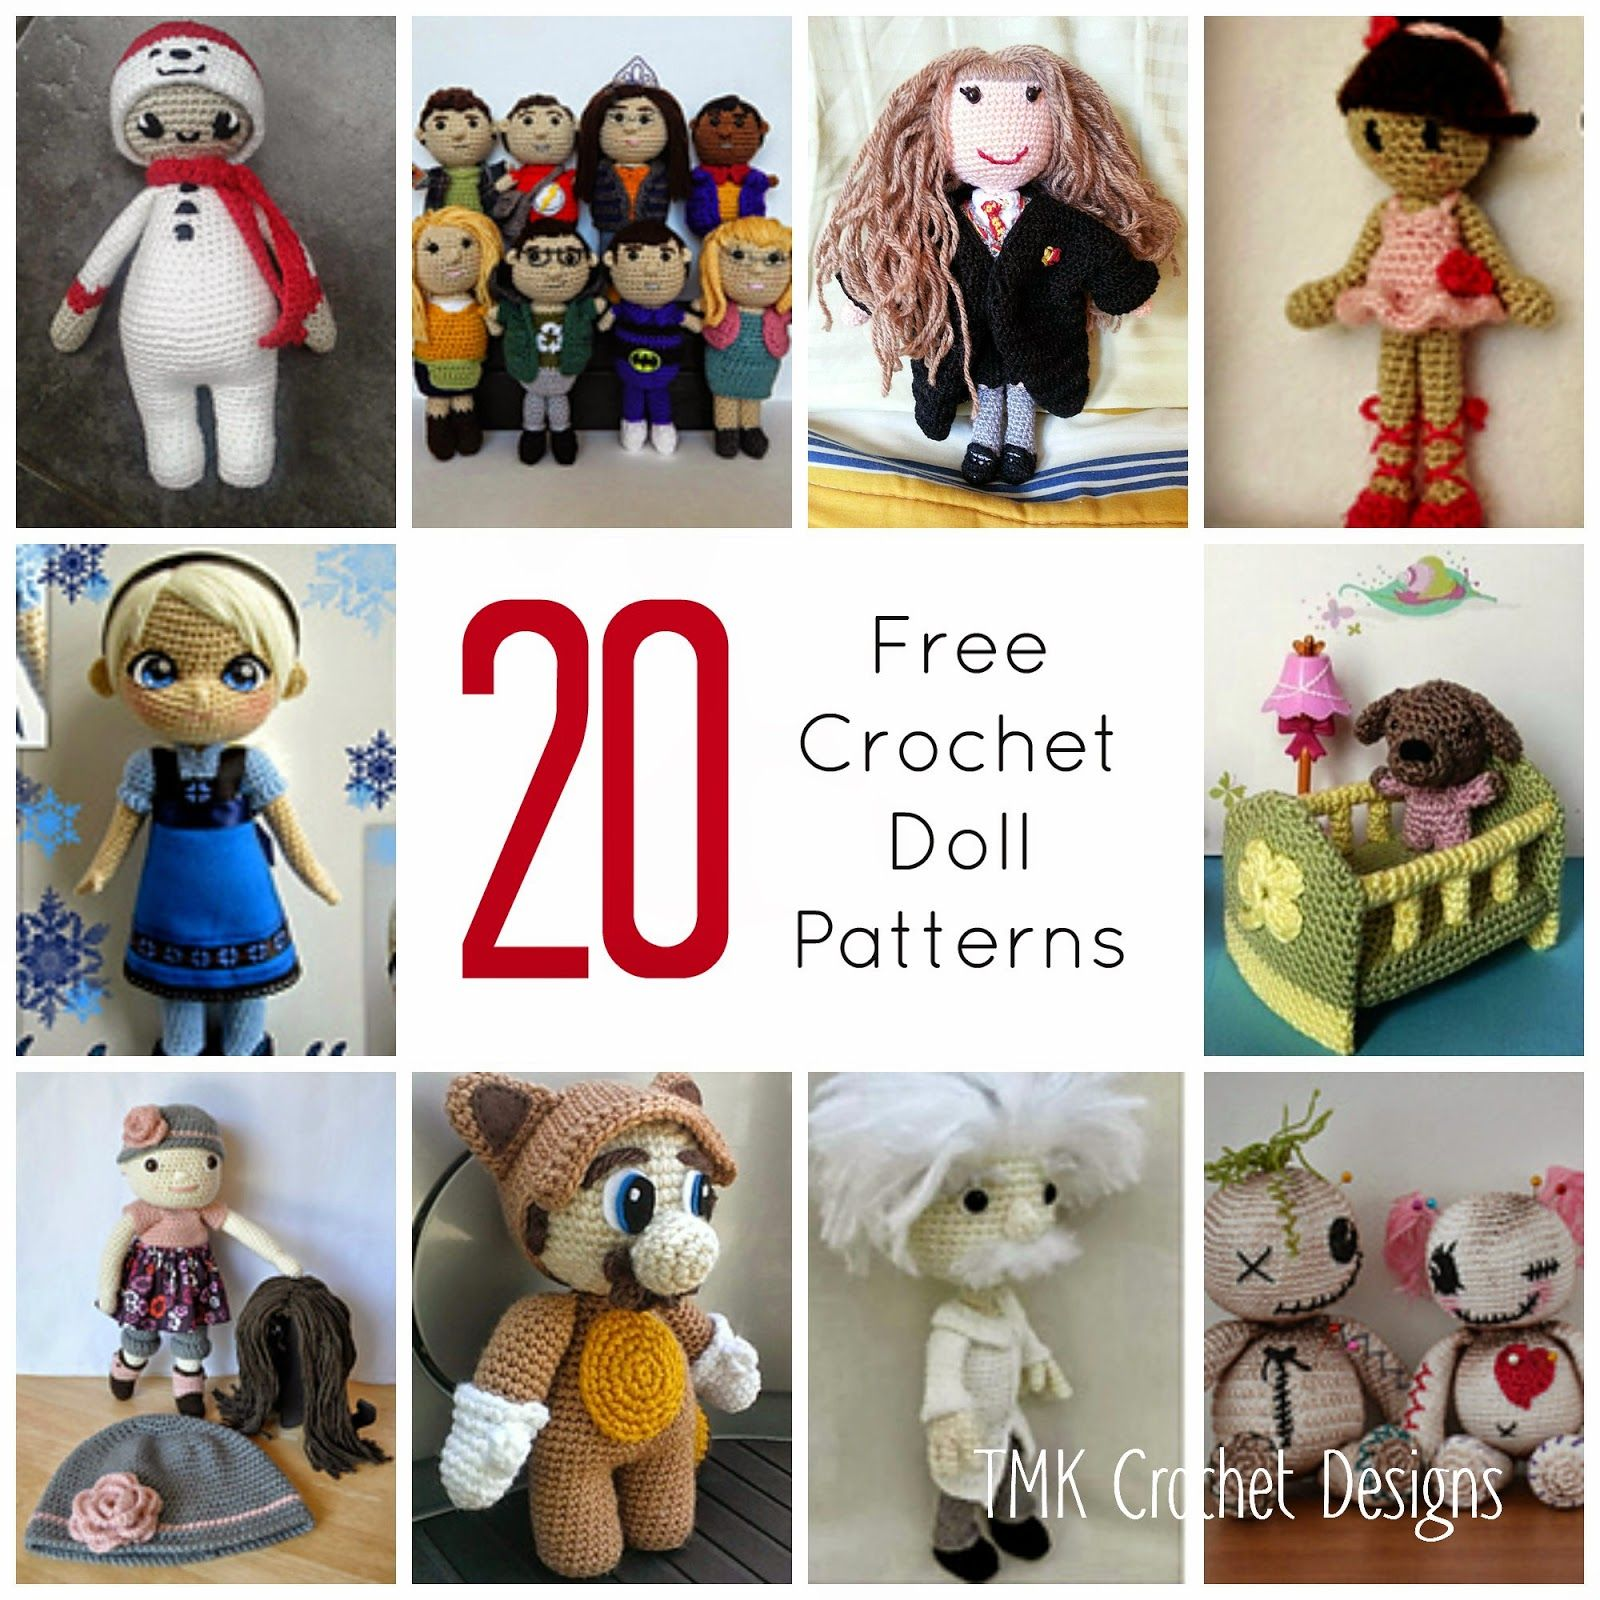 Free Crochet Pattern Round-Up: Dolls. amigurumi, elsa, Mario, big ...